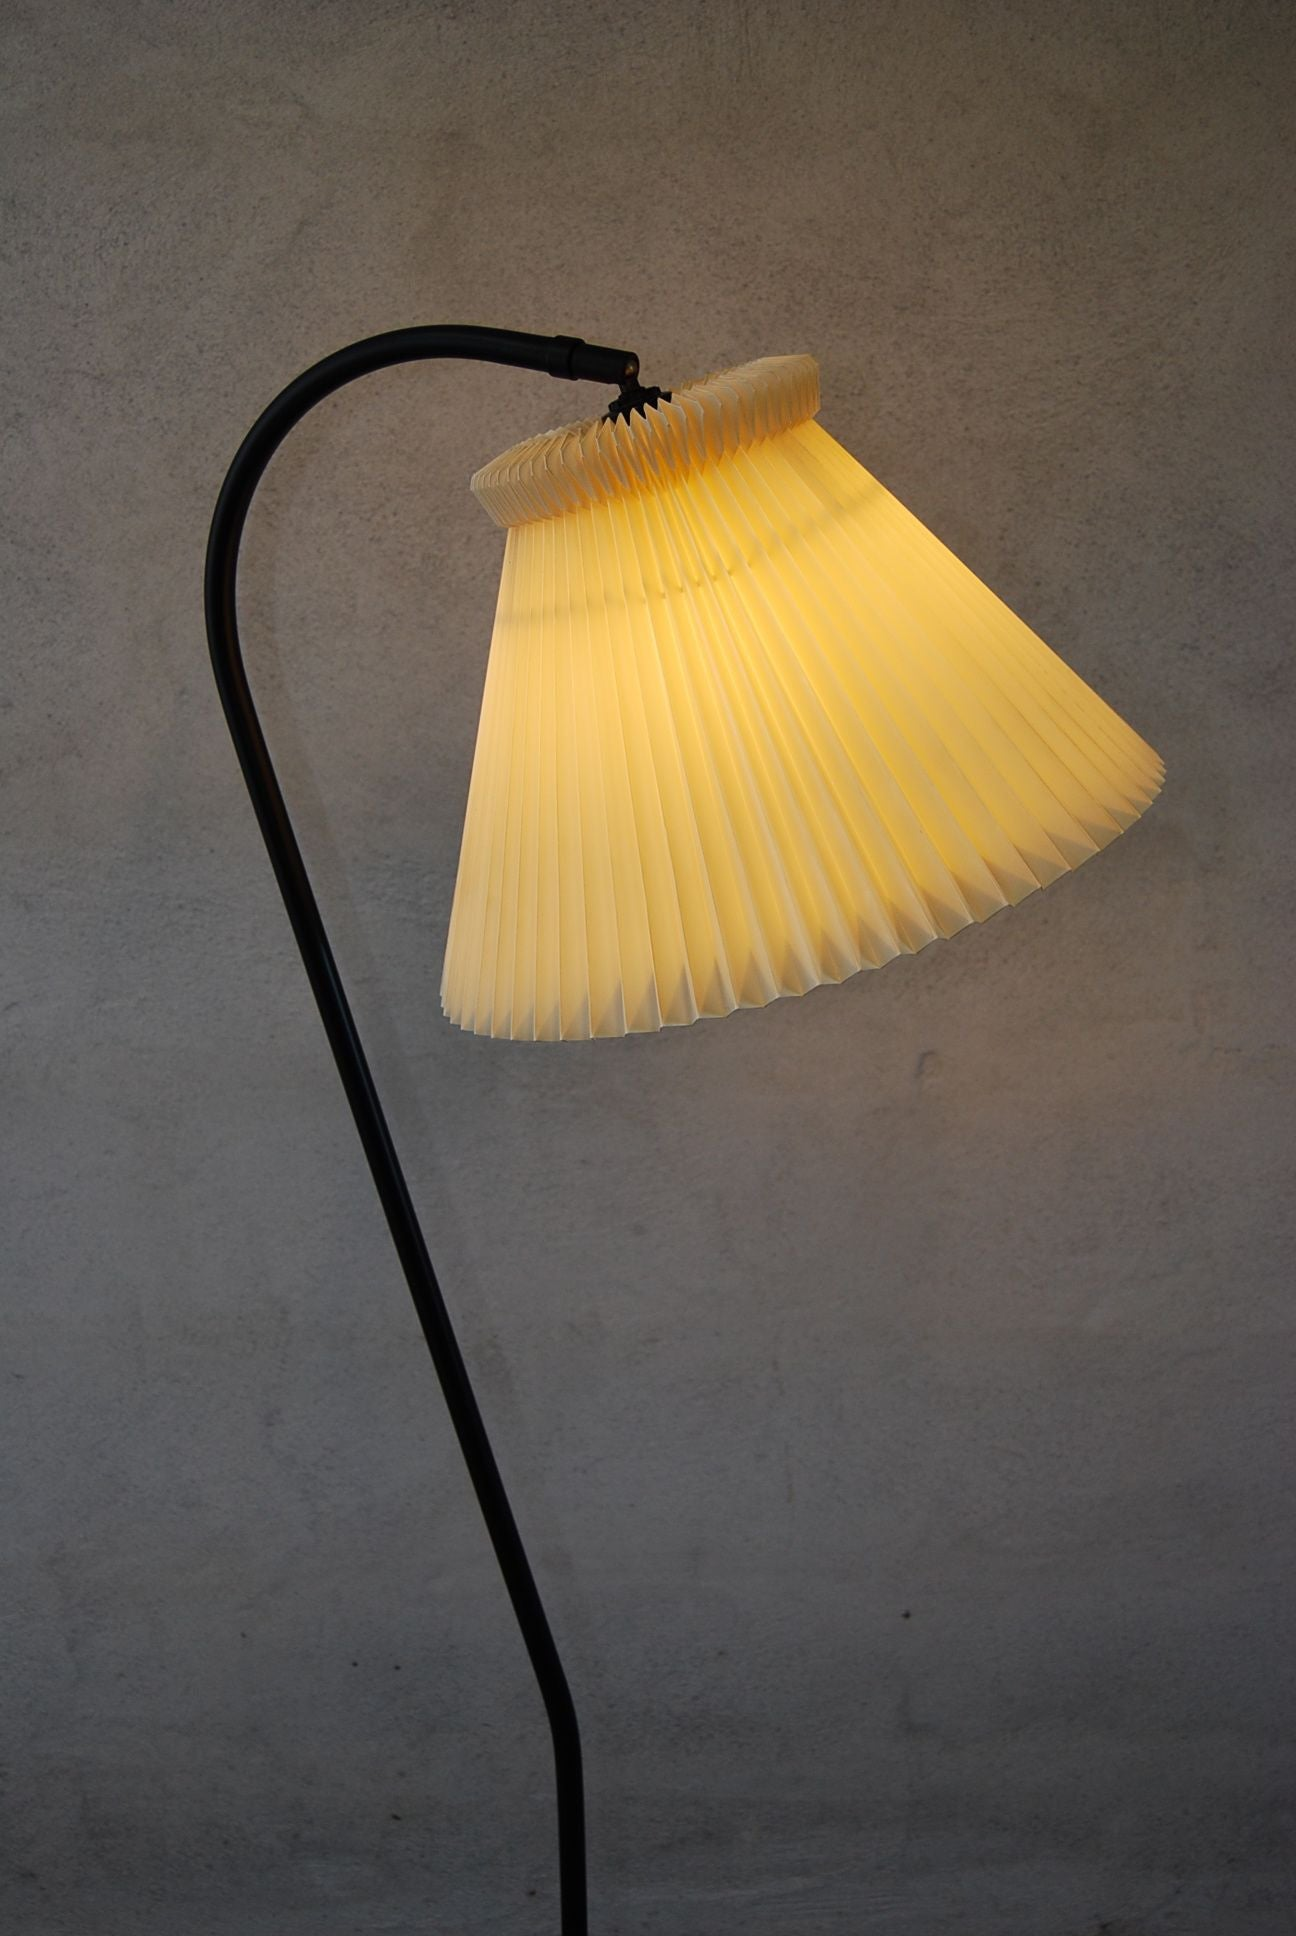 Floor Lamp with Curved Neck